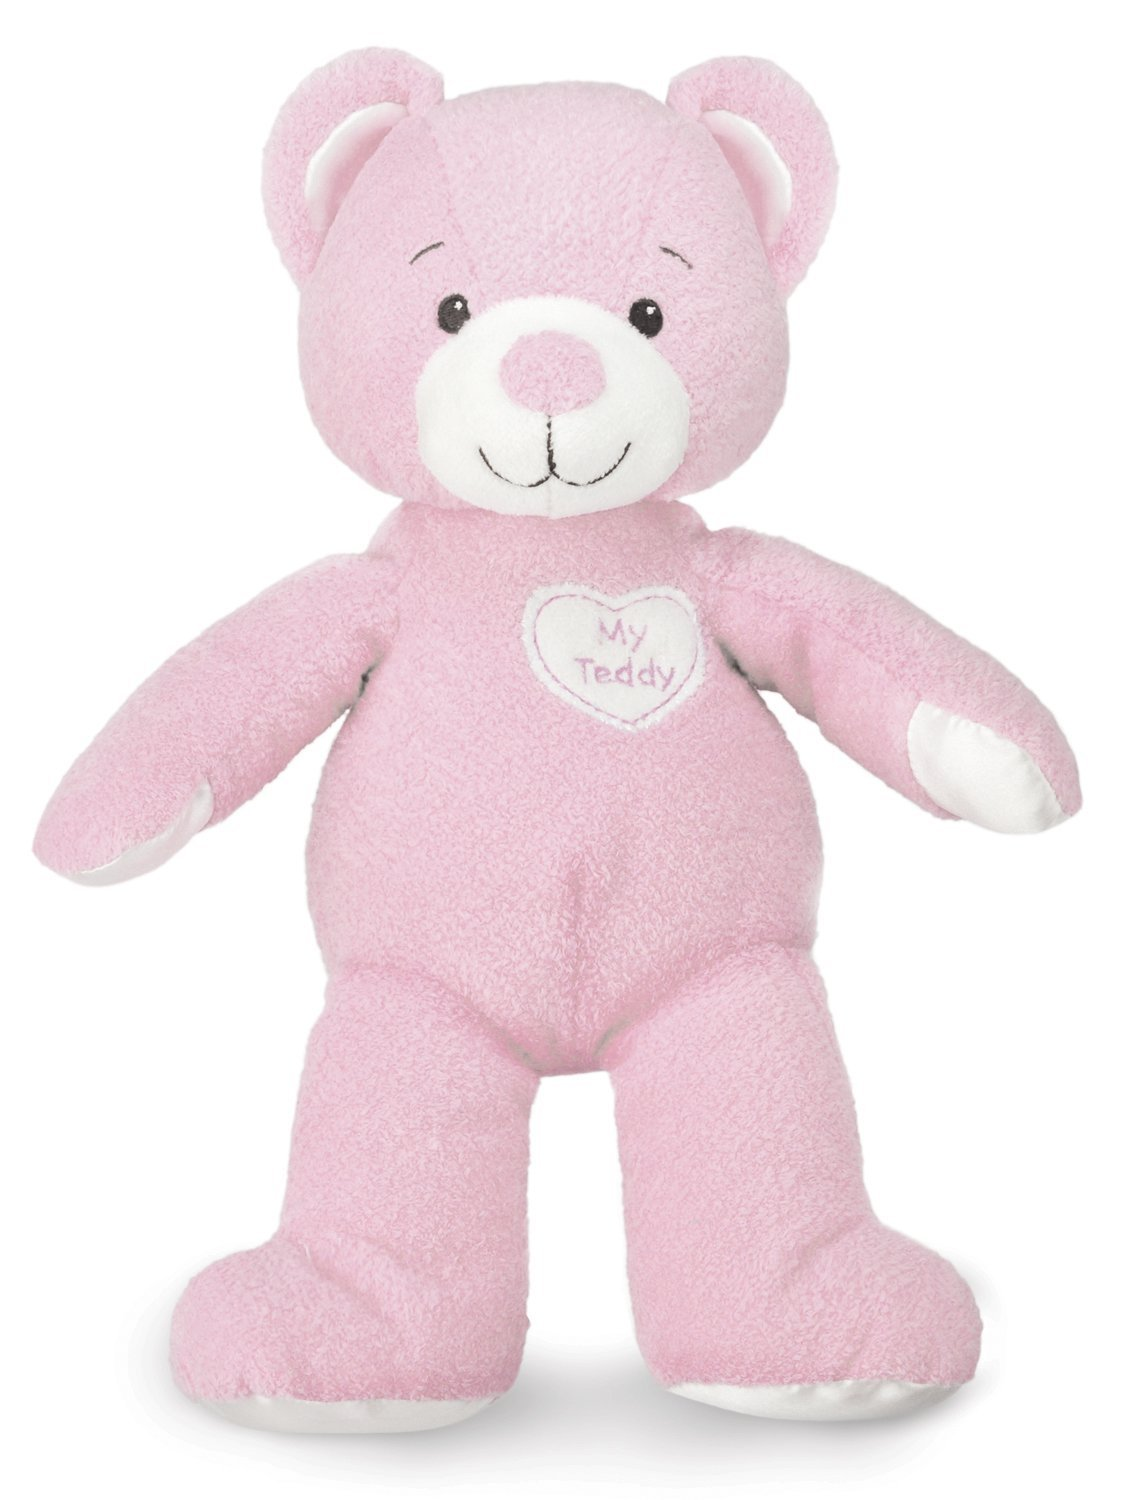 Healthy Baby: Asthma and Allergy My Teddy Bear Pink by Kids Preferred